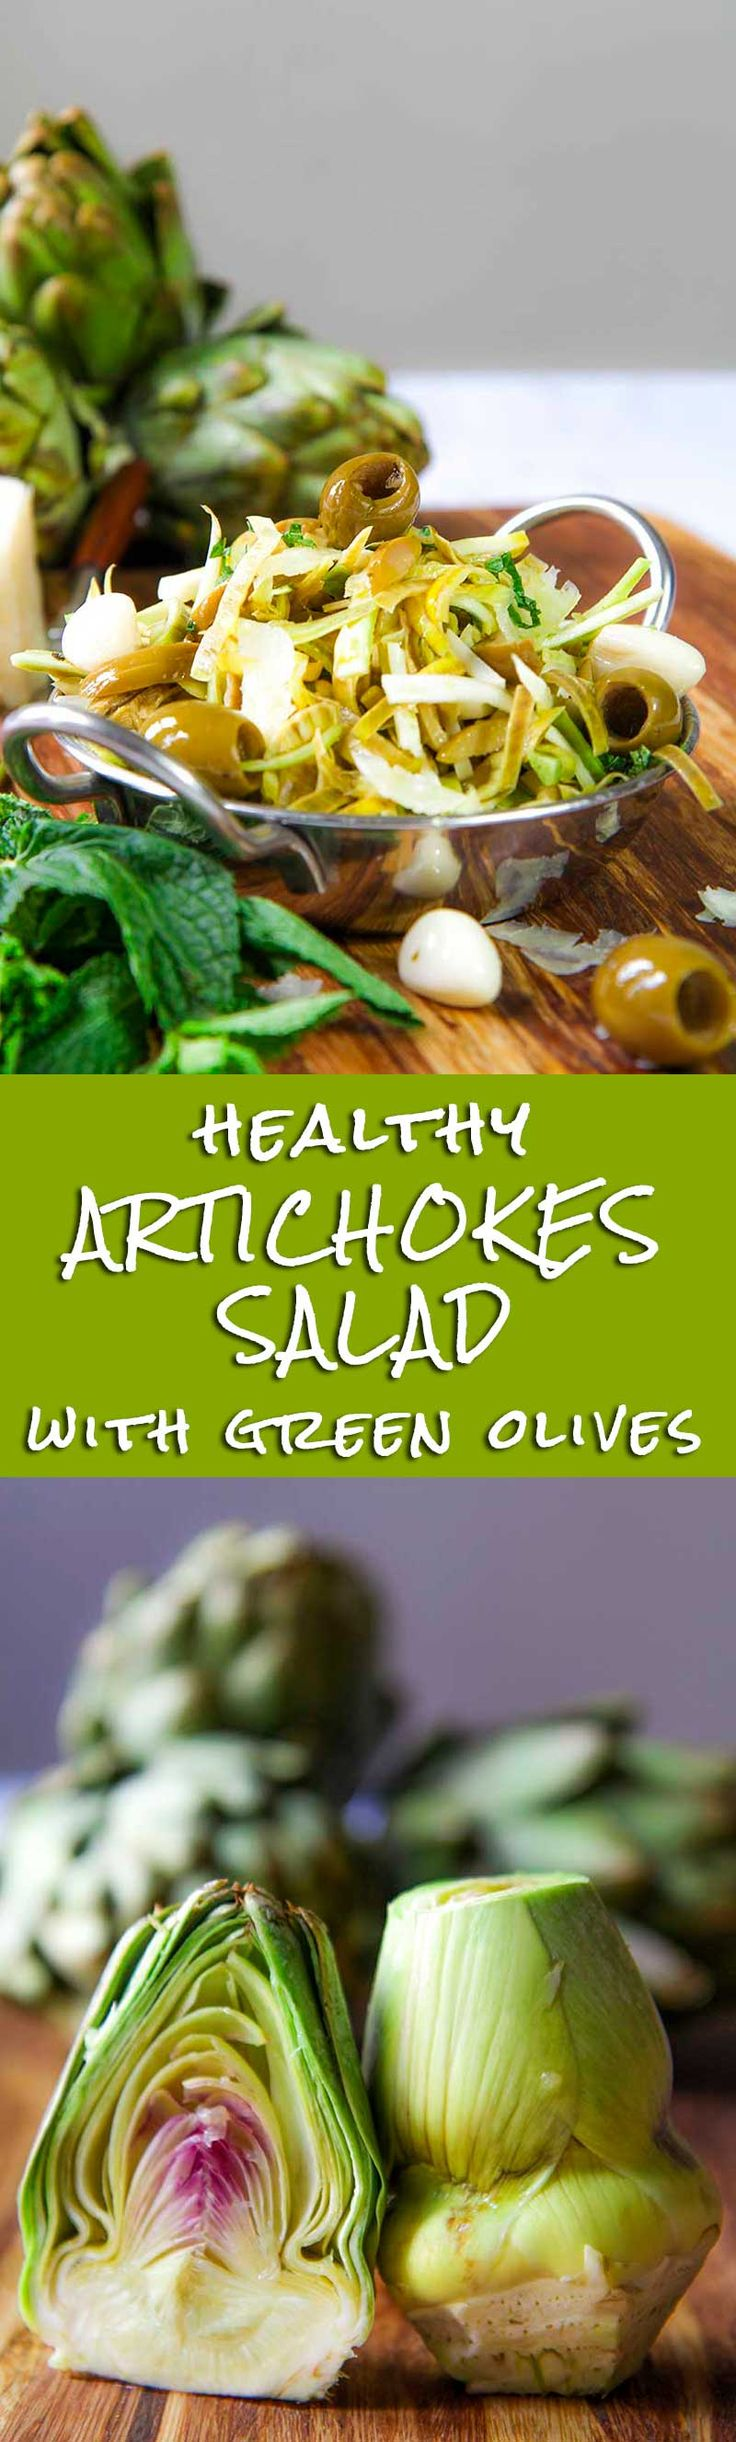 14 best raw food images on pinterest free recipes kitchen and artichokes salad with green olives and sweet garlic forumfinder Gallery